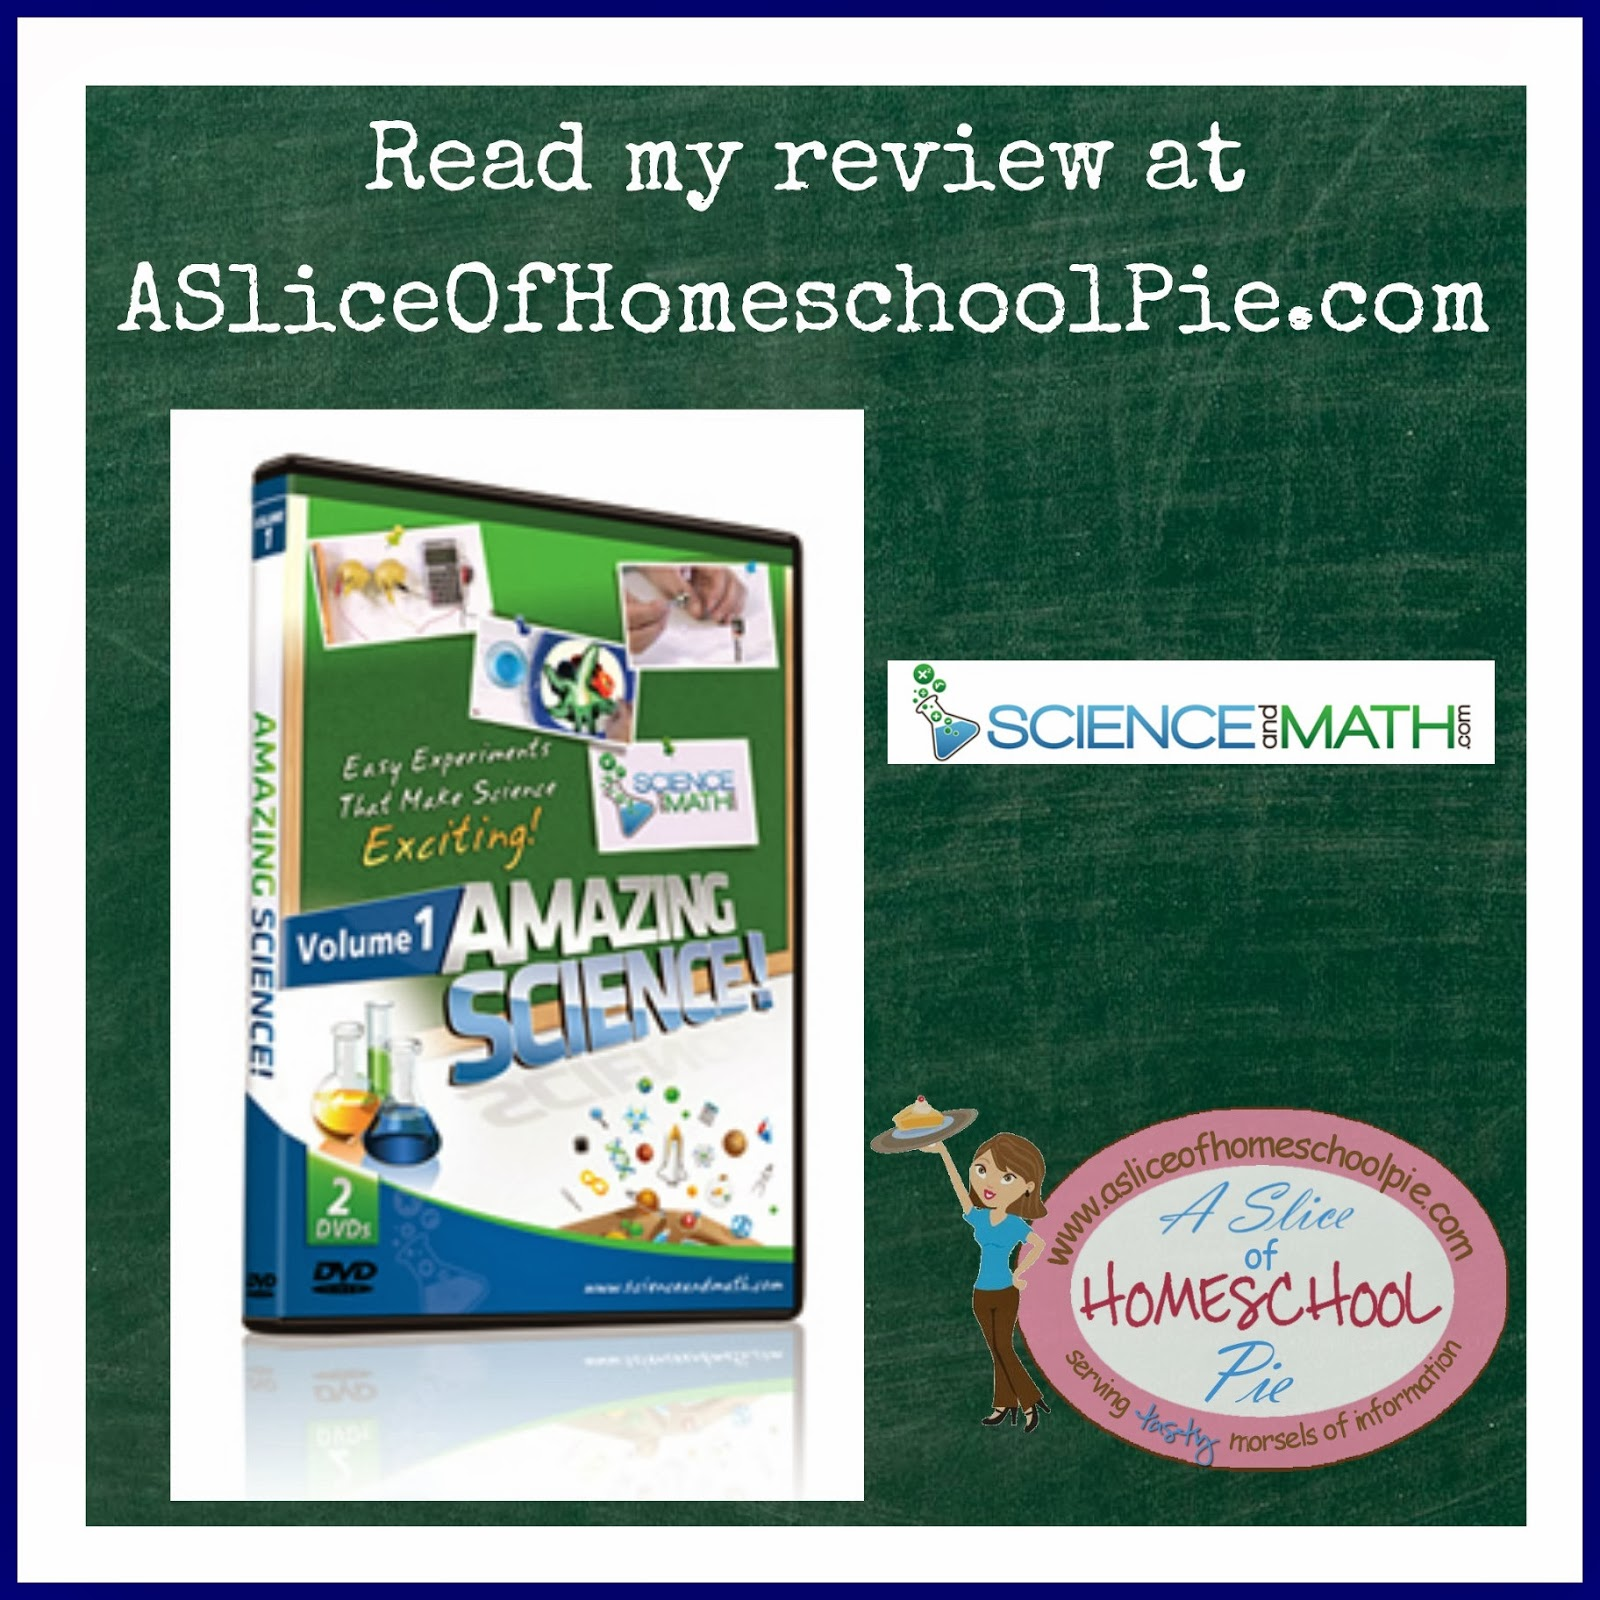 Amazing Science Vol. 1 by ScienceandMath.com - A Review by ASliceOfHomeschoolPie.com